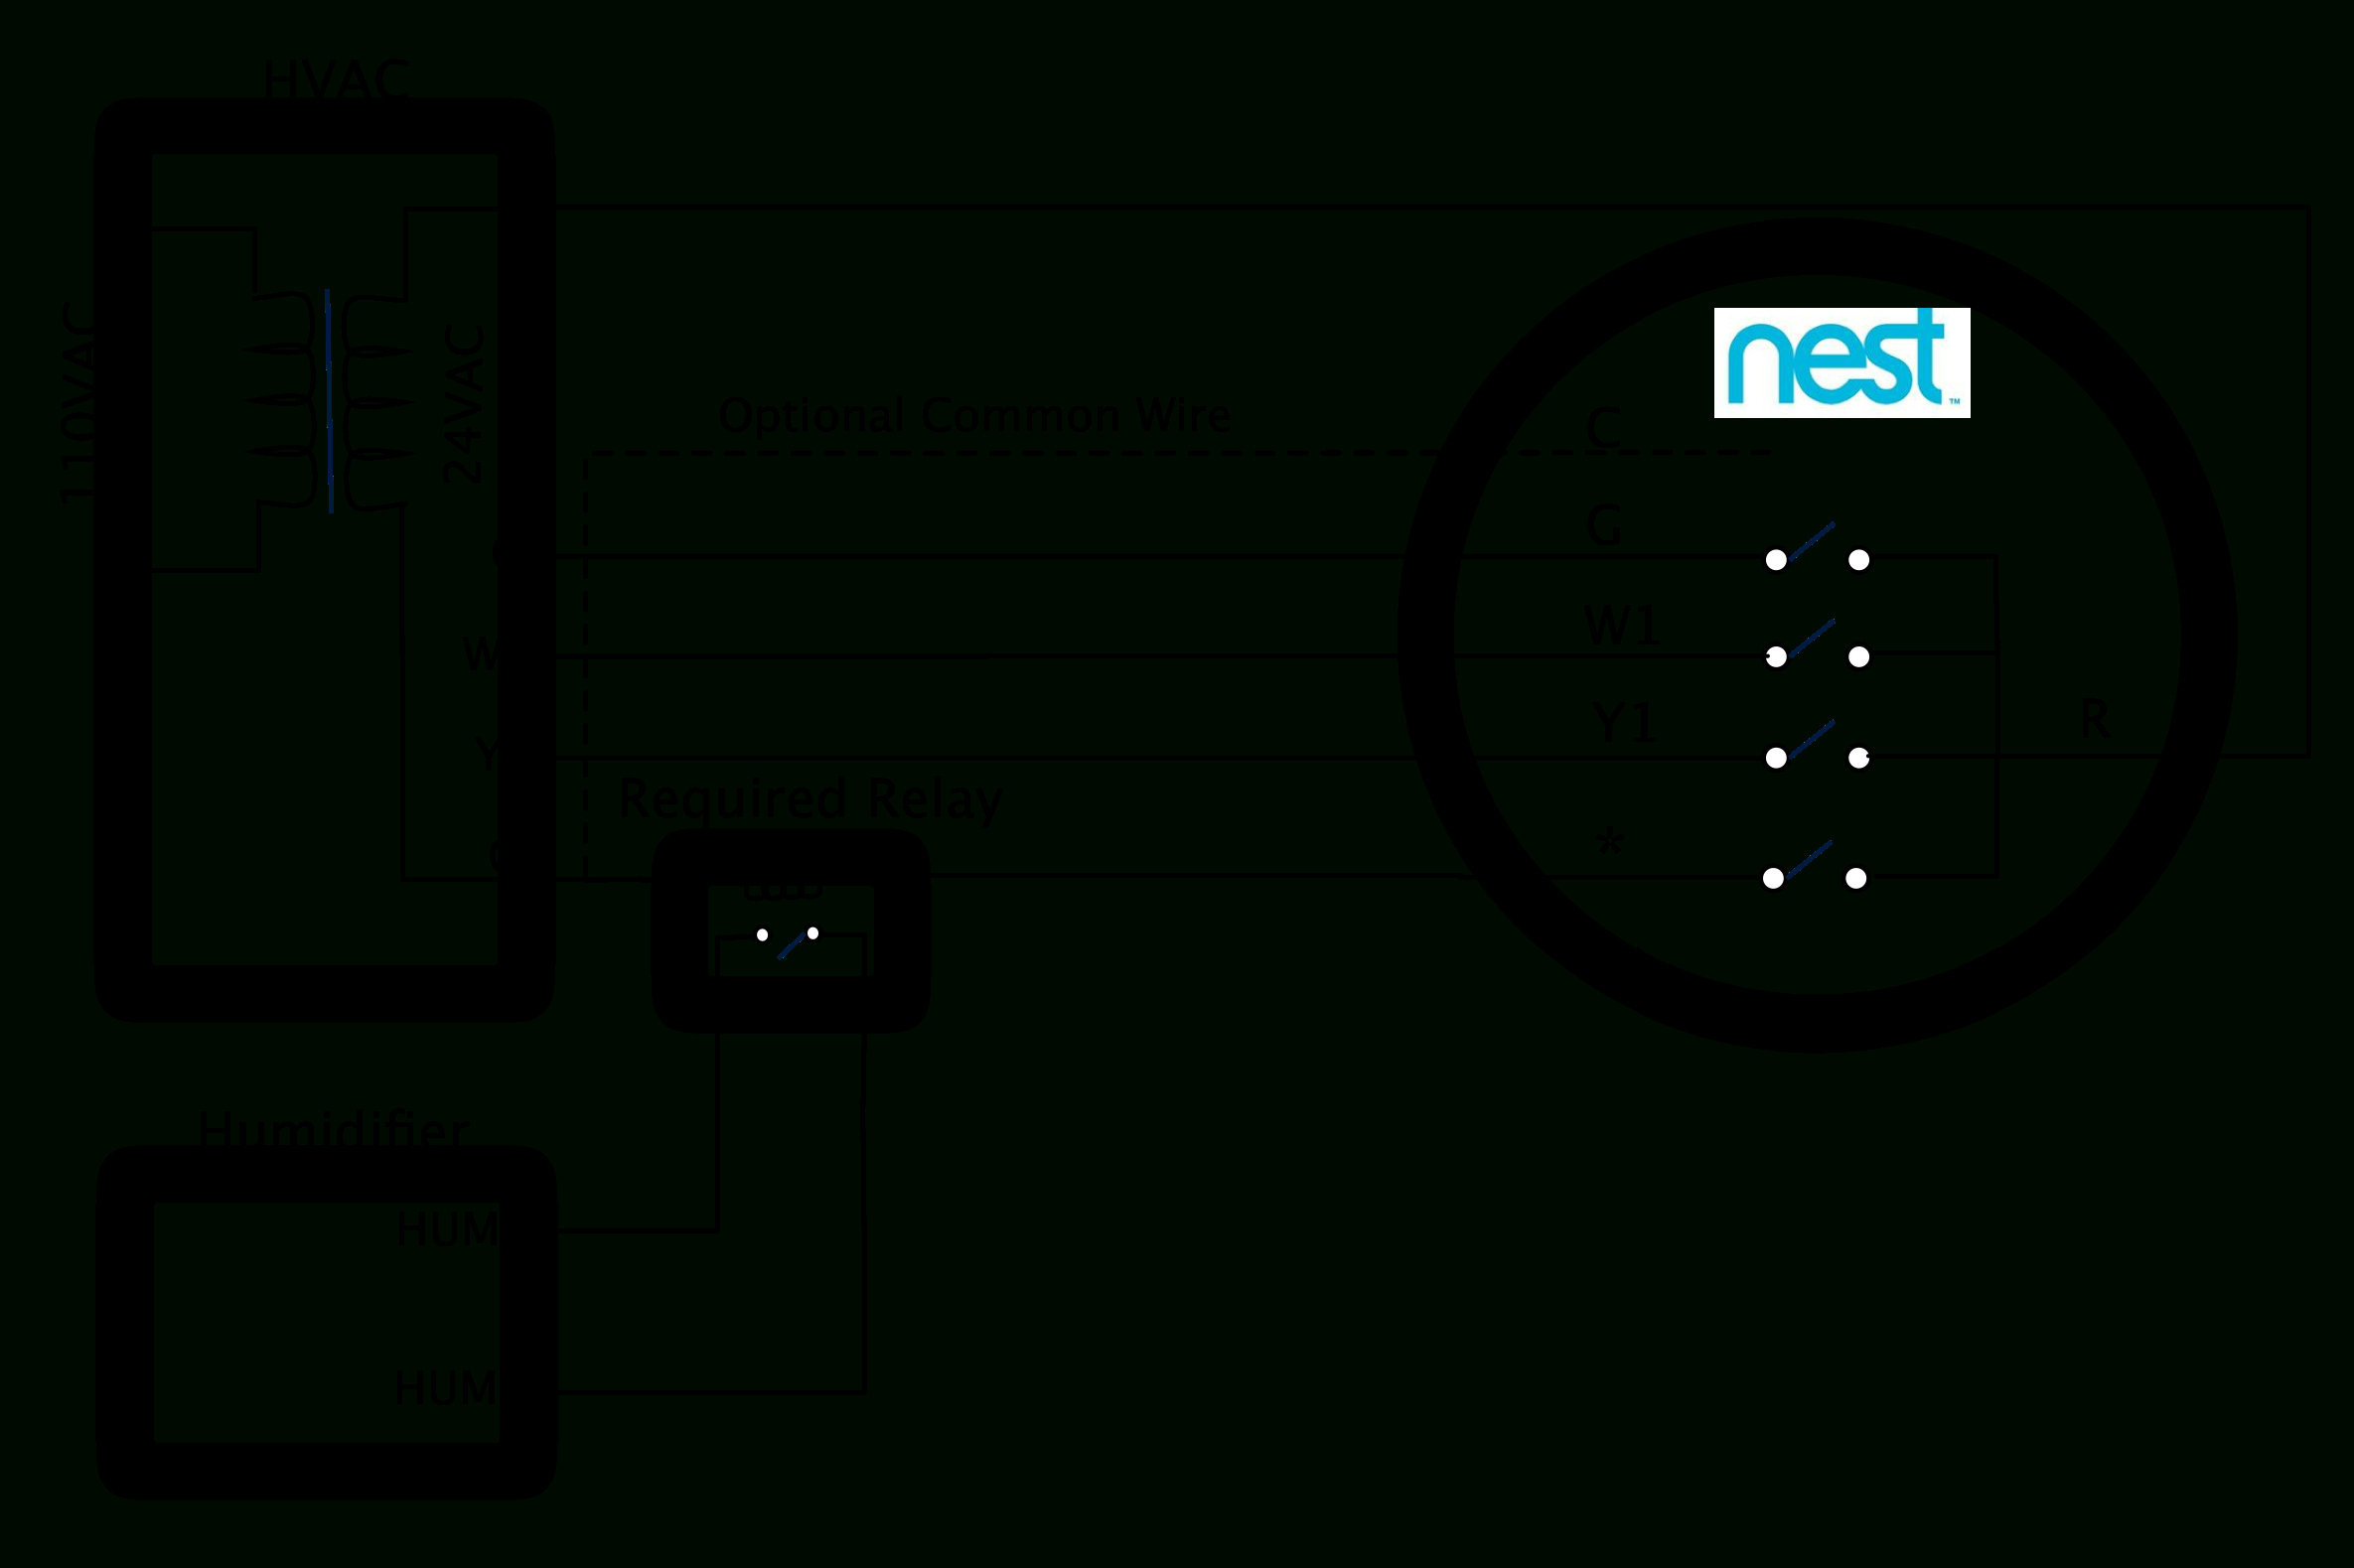 Nest Thermostat Wiring Diagram For Heat Only - Wiring Diagrams Click - Digital Thermostat Wiring Diagram Nest